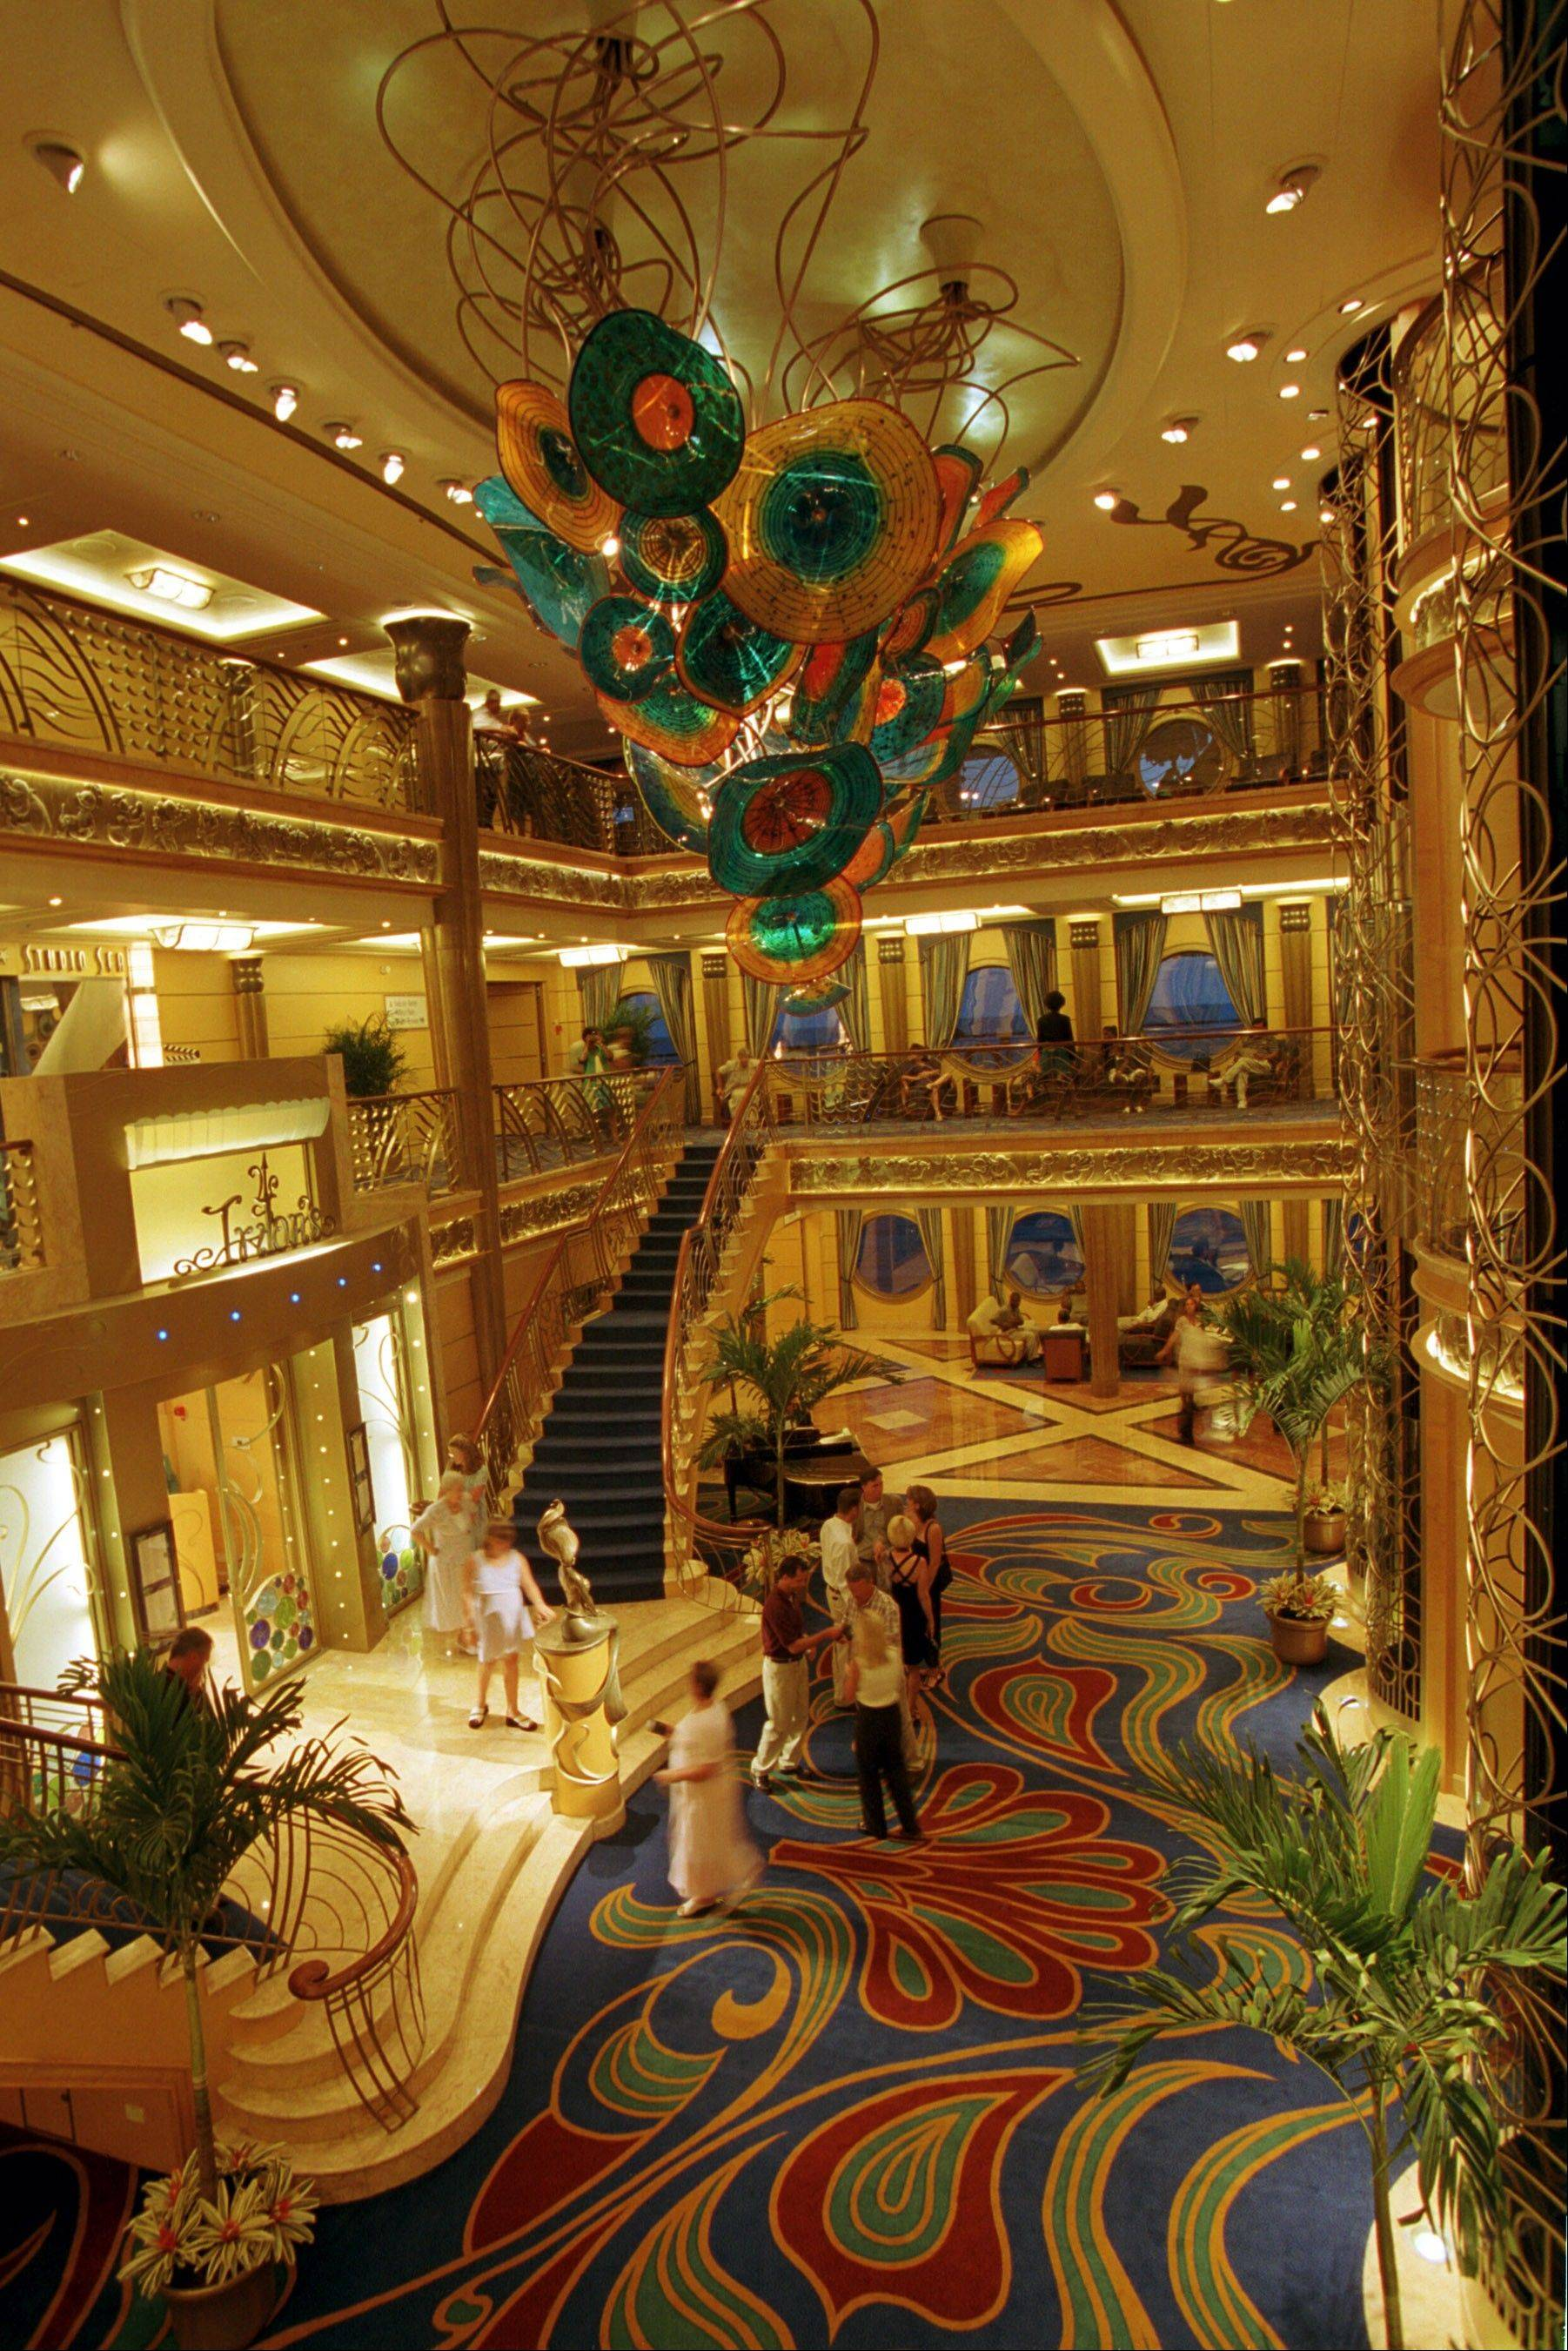 The three-deck atrium lobby on the Disney Wonder features Art Nouveau-inspired details reminiscent of the Golden Age of cruising.